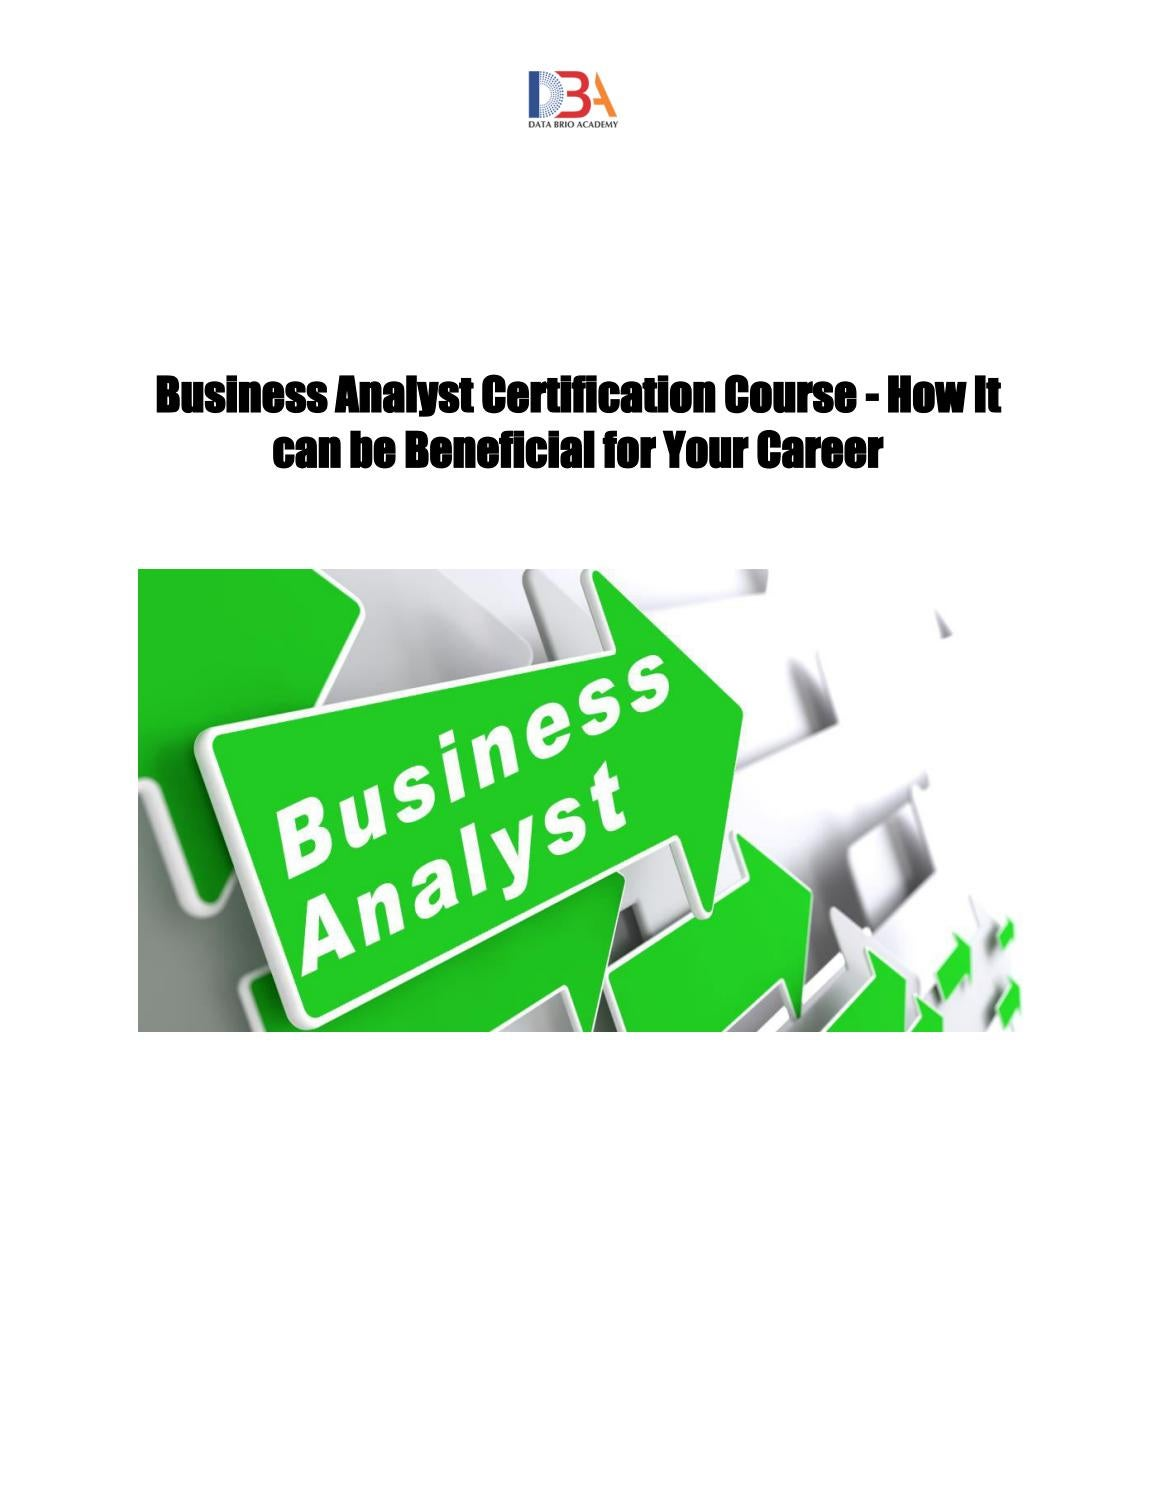 Business Analyst Certification Course By Data Brio Academy Issuu